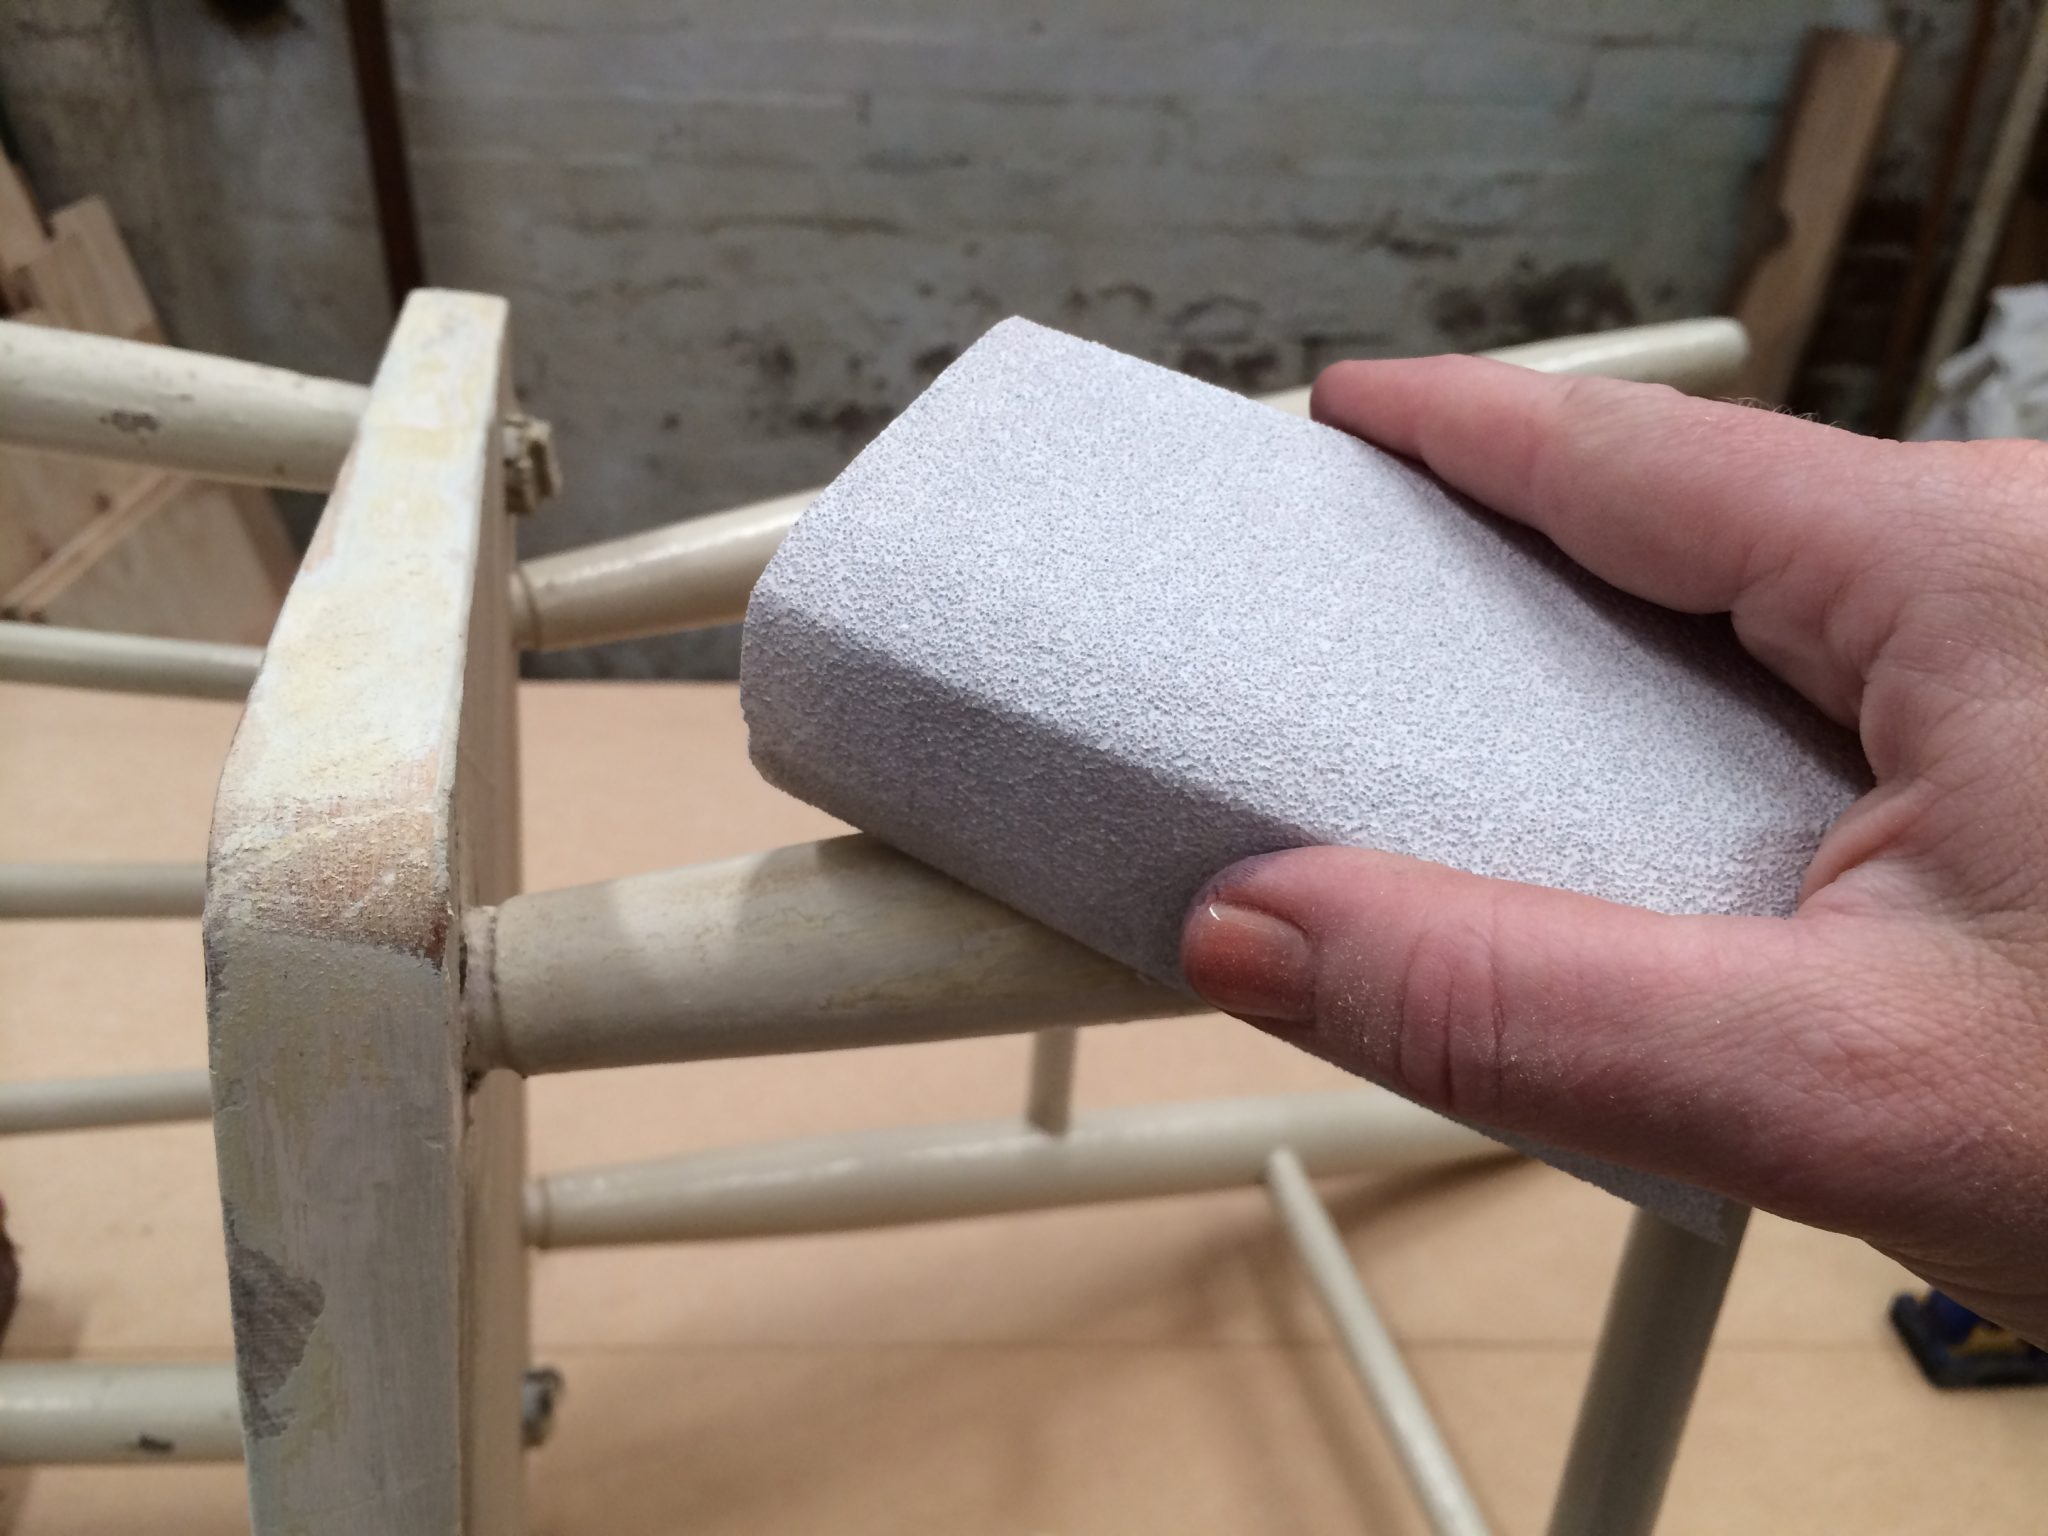 1 clean and smooth using a sanding block with 80 grit abrasive paper